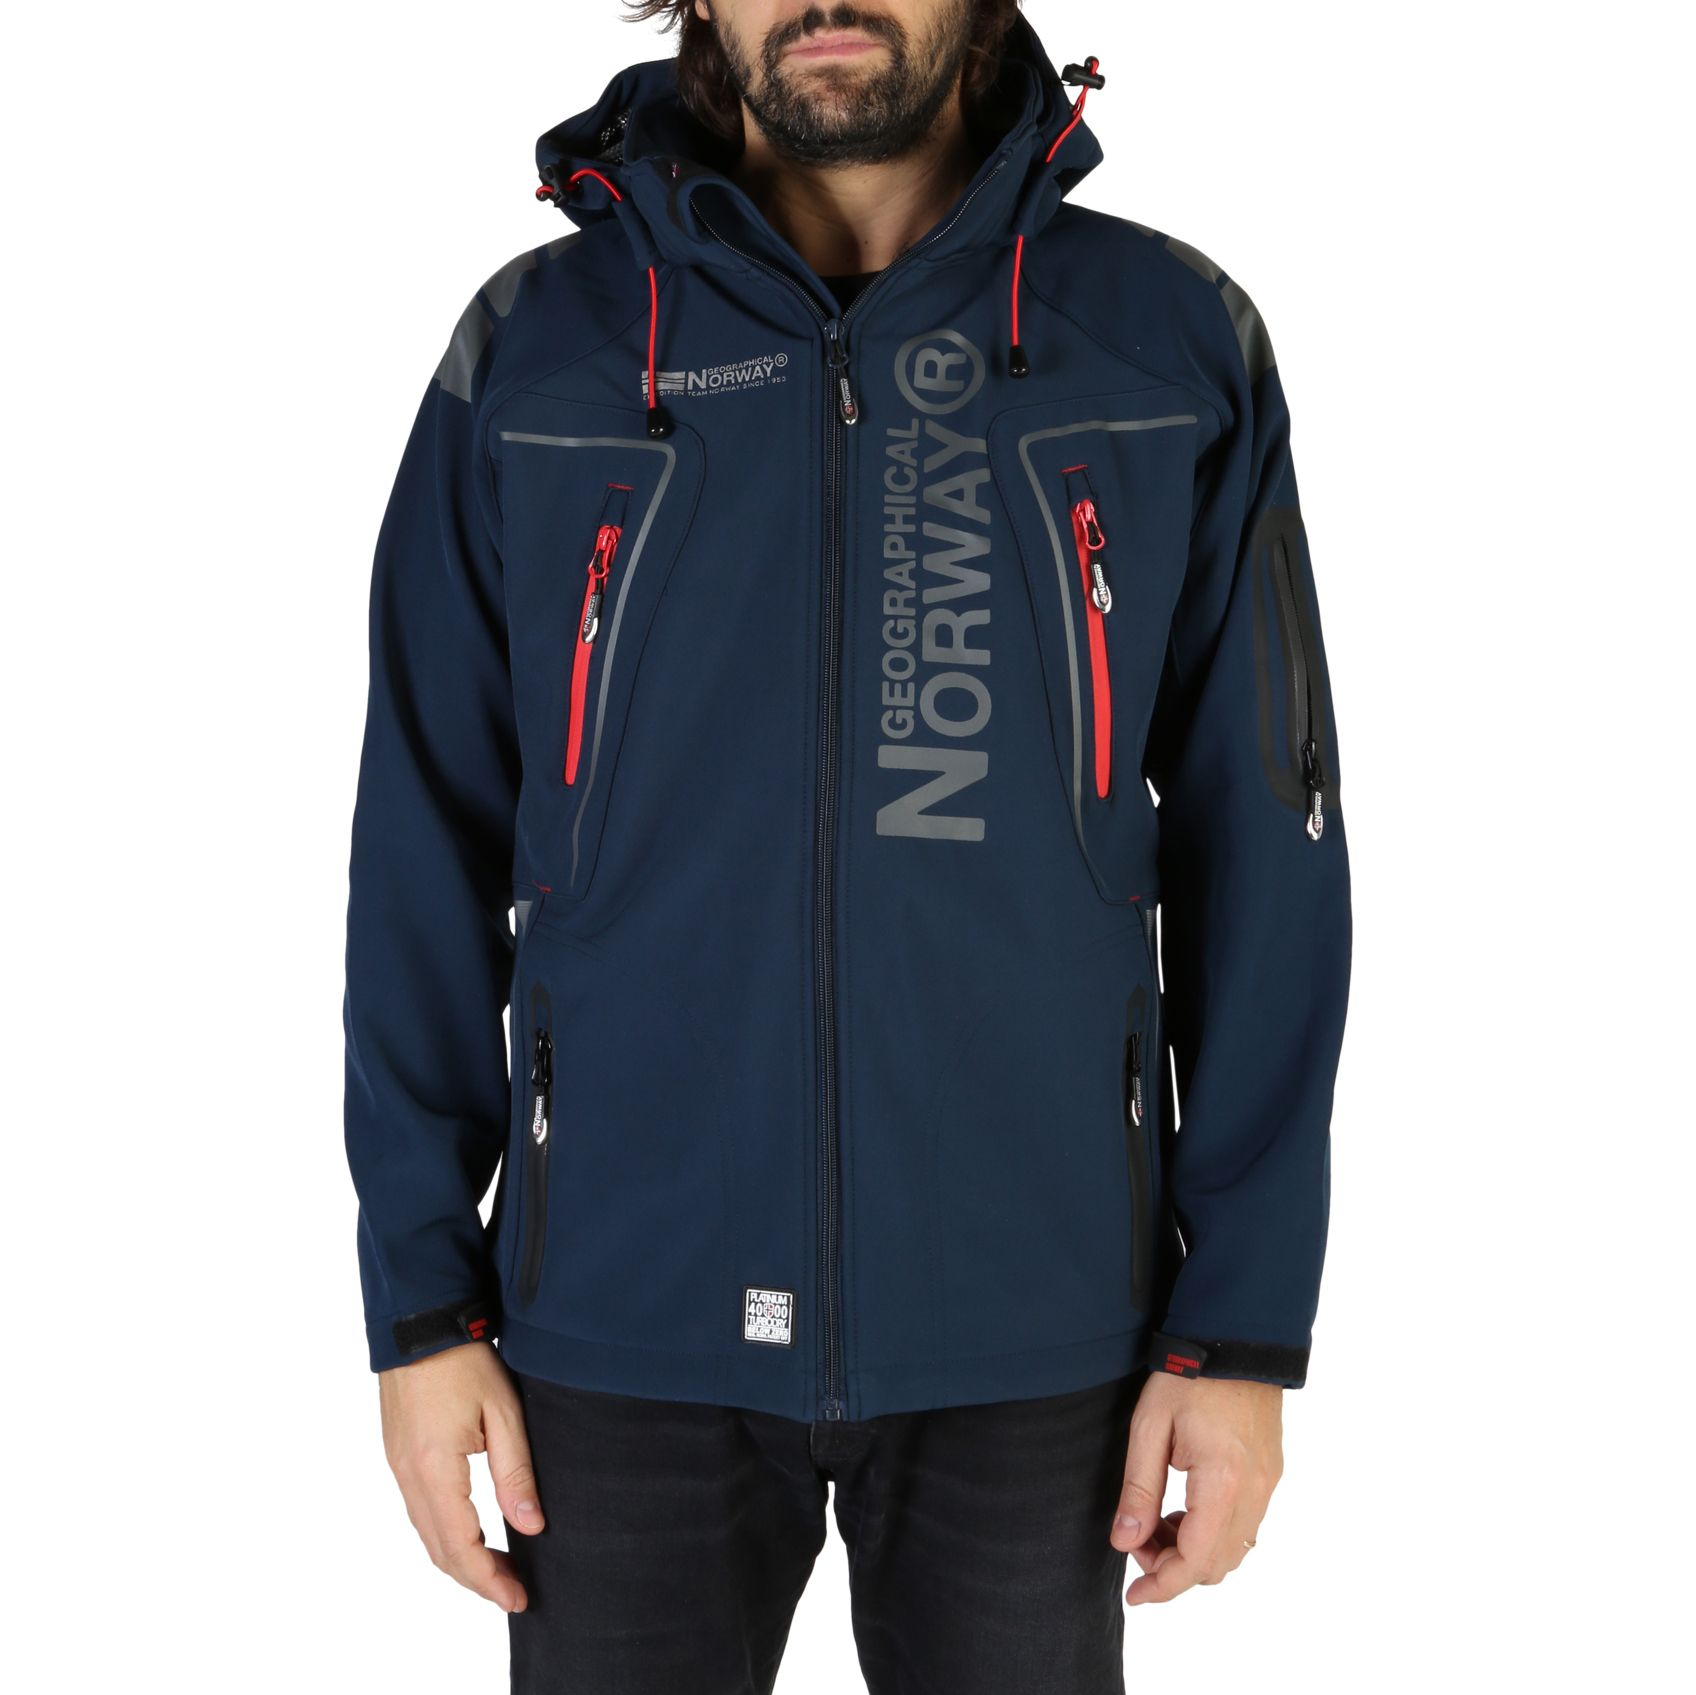 Geographical Norway Mens Jackets